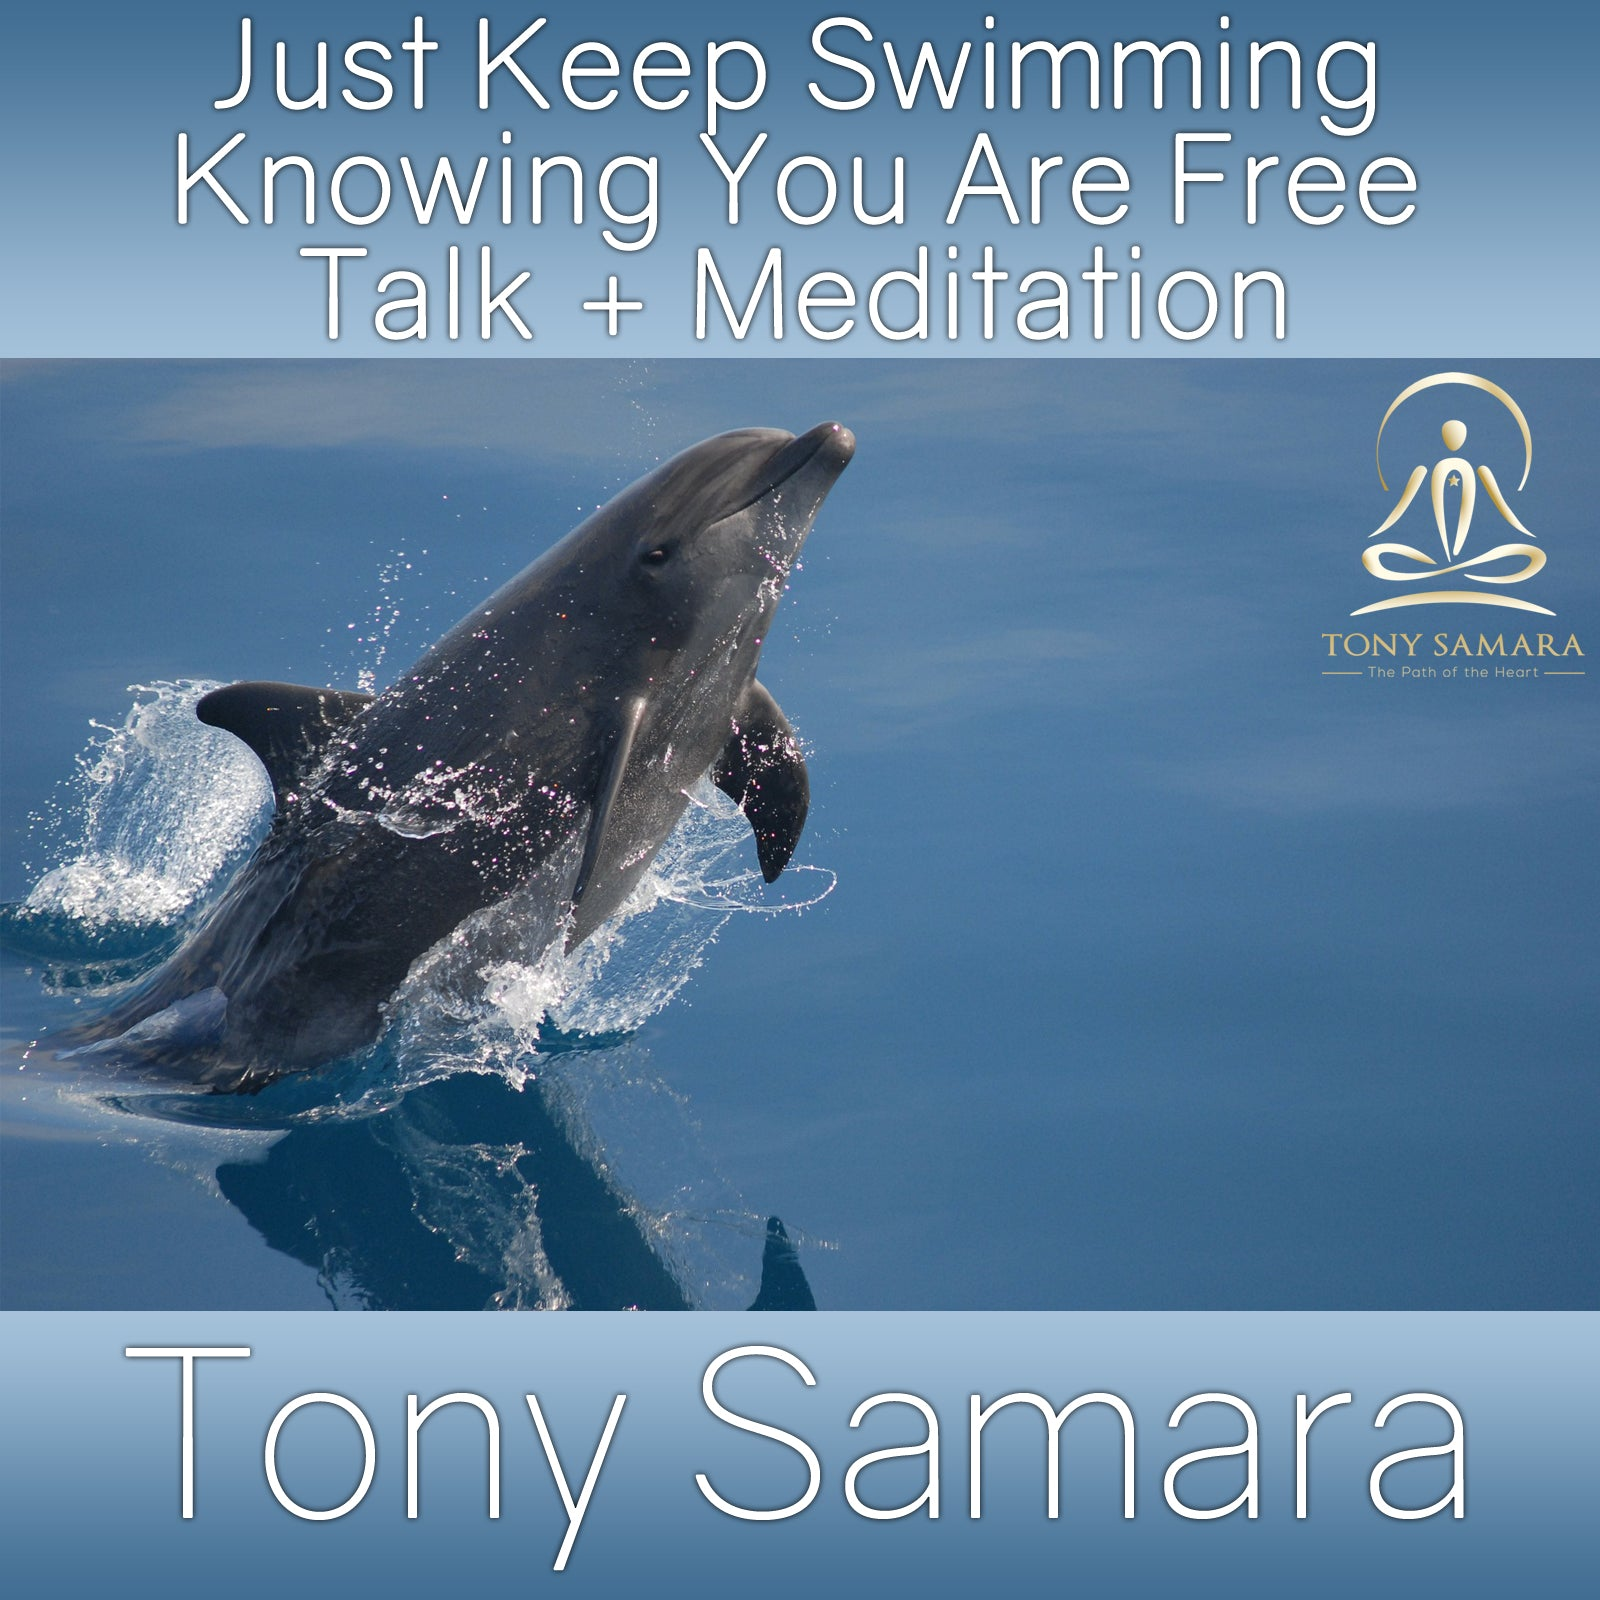 Just Keep Swimming Knowing You Are Free Talk + Meditation (MP3 Audio Download) - Tony Samara Meditation